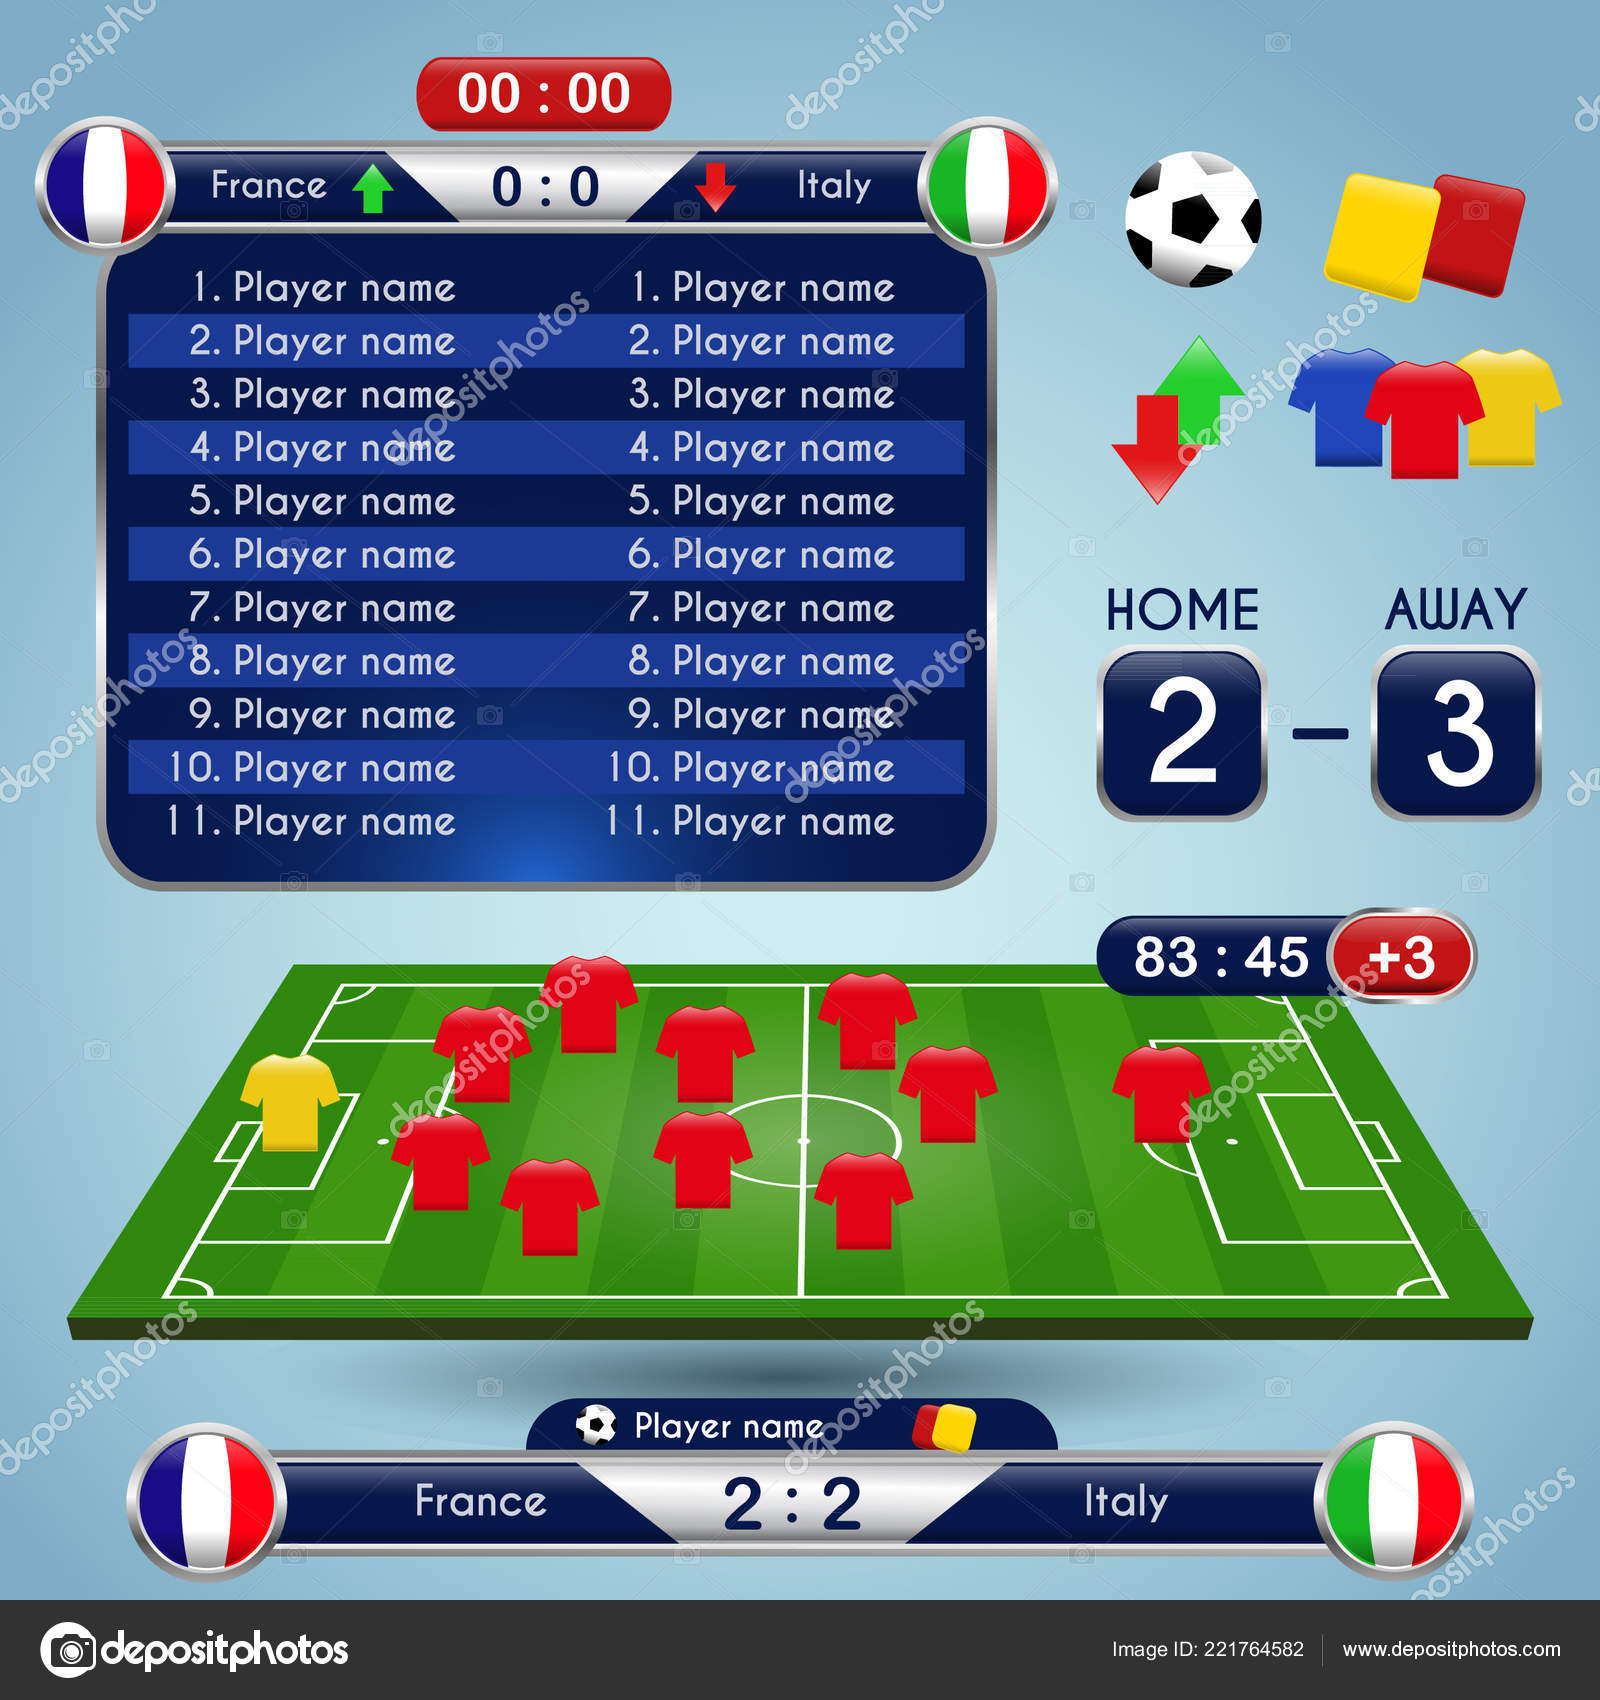 Broadcast Graphics For Sport Program Soccer Match Statistics Elements Template Football Formation And Stadium Playfield Scoreboard